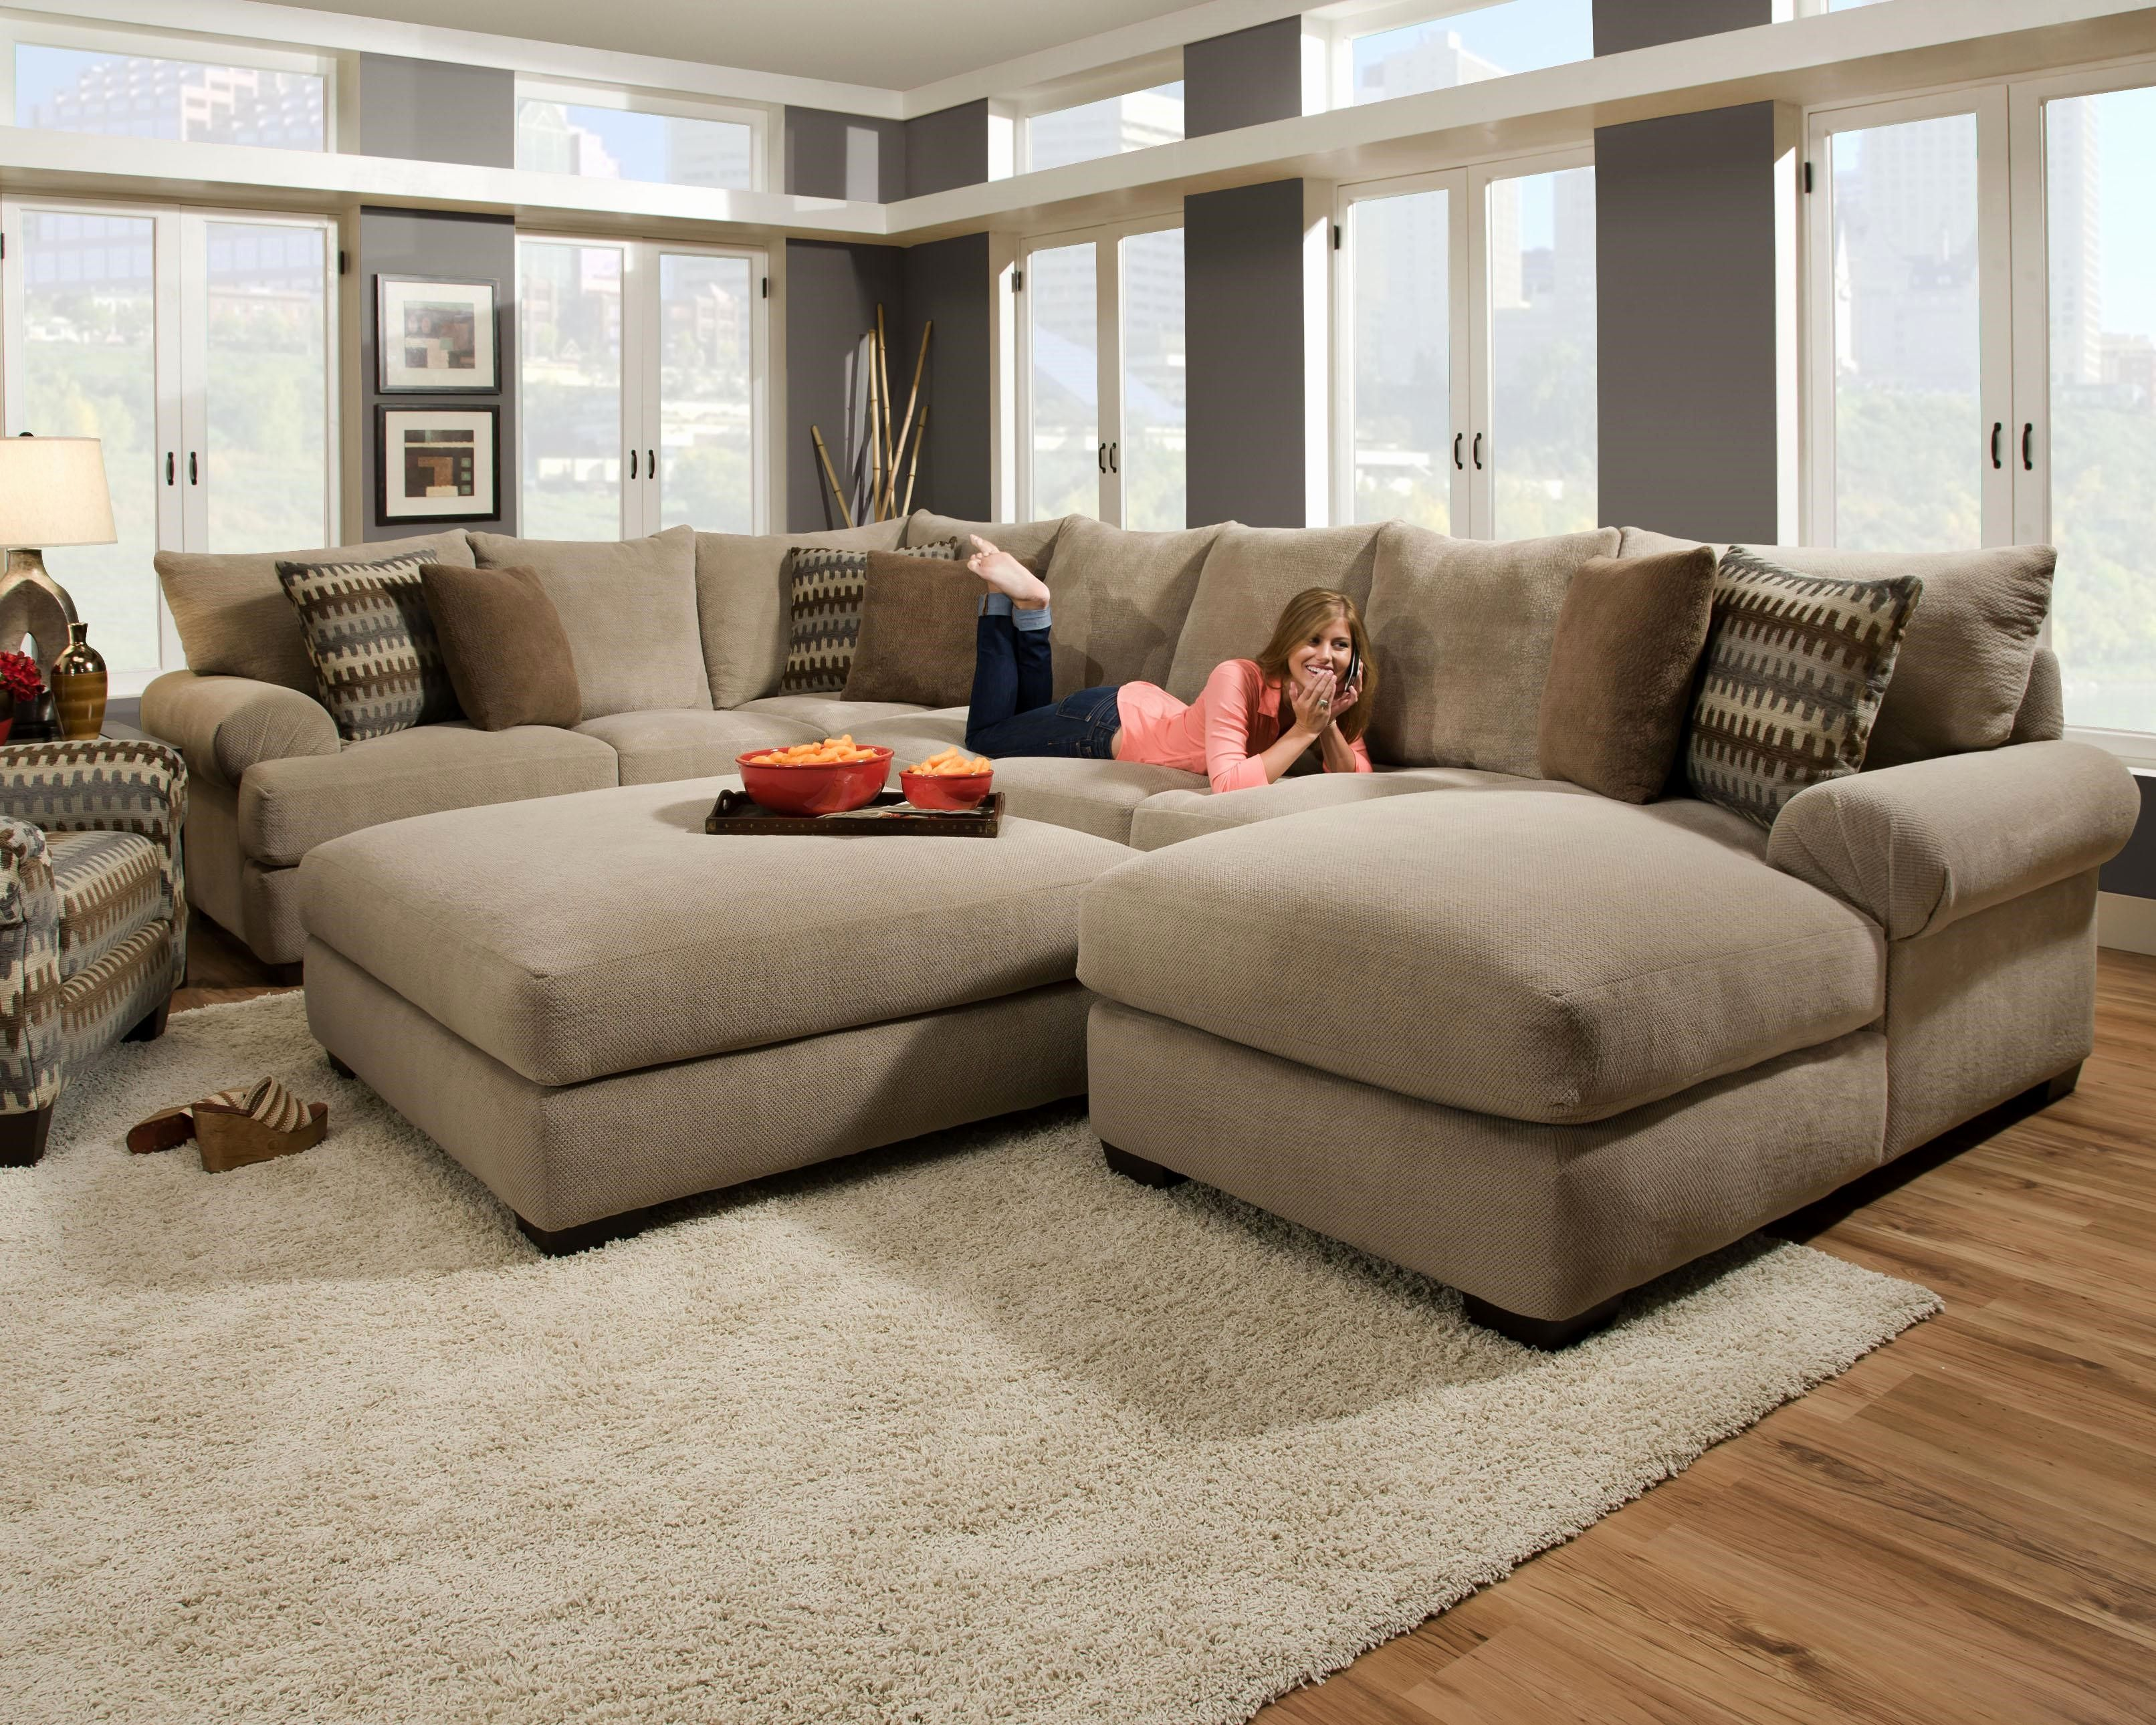 Elegant Extra Large Sectional Sofa Pictures Extra Large Sectional Sofa Fresh Sofa Engagin Comfortable Sectional Sofa Comfortable Sectional Large Sectional Sofa